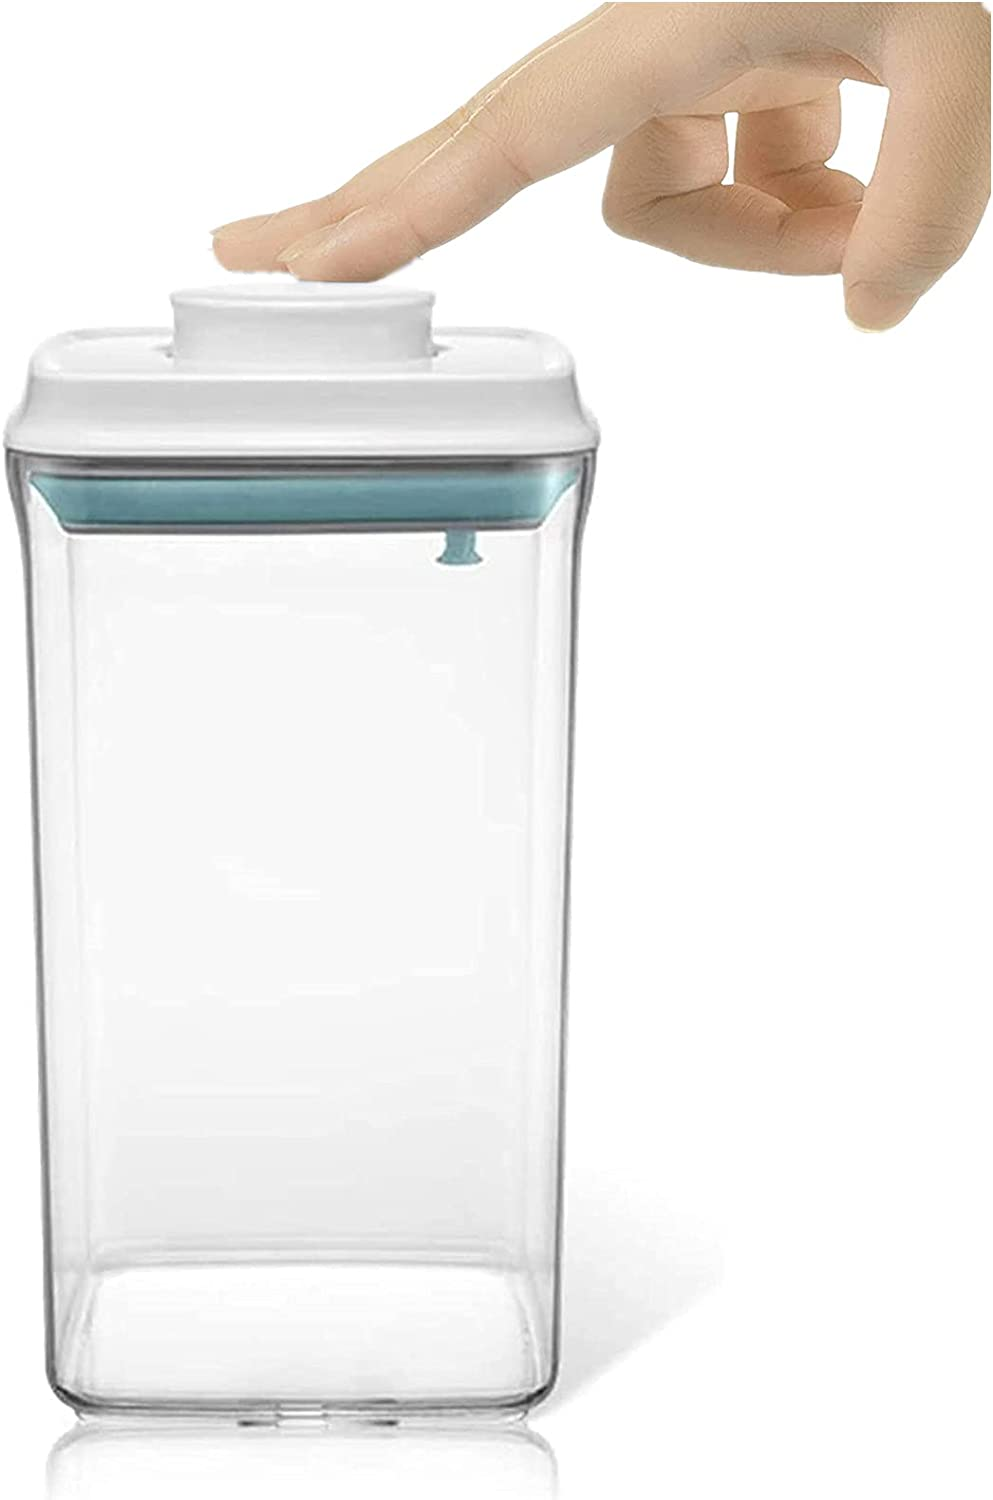 2 QT - Pop Up Airtight Storage Container, Super Easy to Open & Lock, BPA-Free, Square Plastic Storage Jar